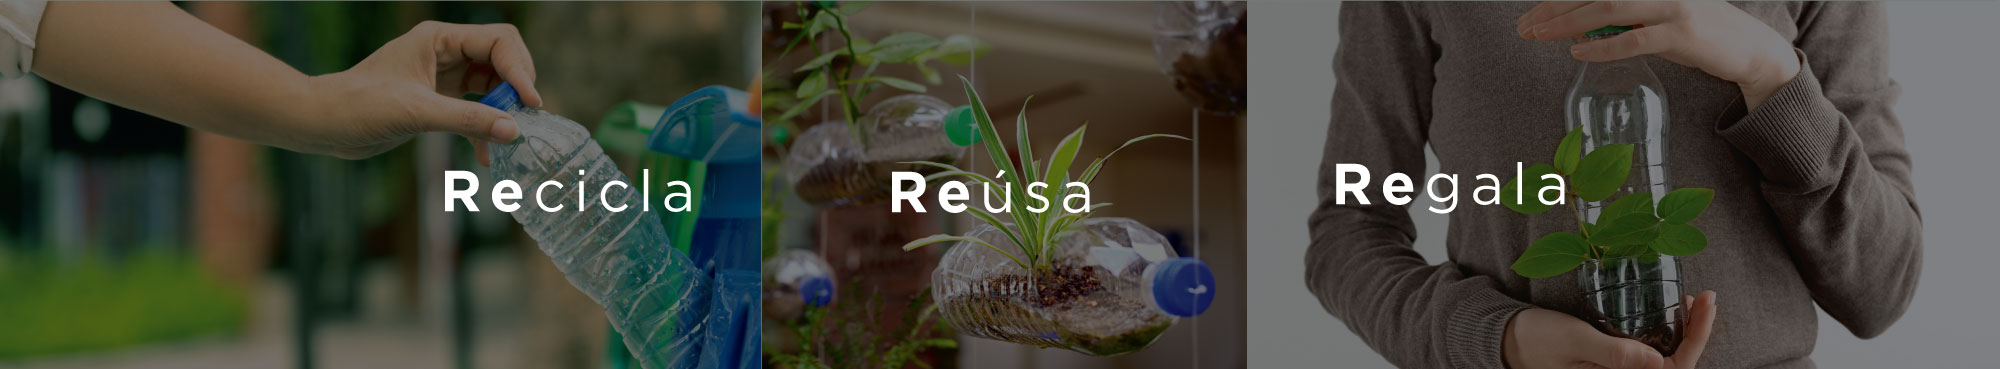 Recicla - Reúsa - Regala